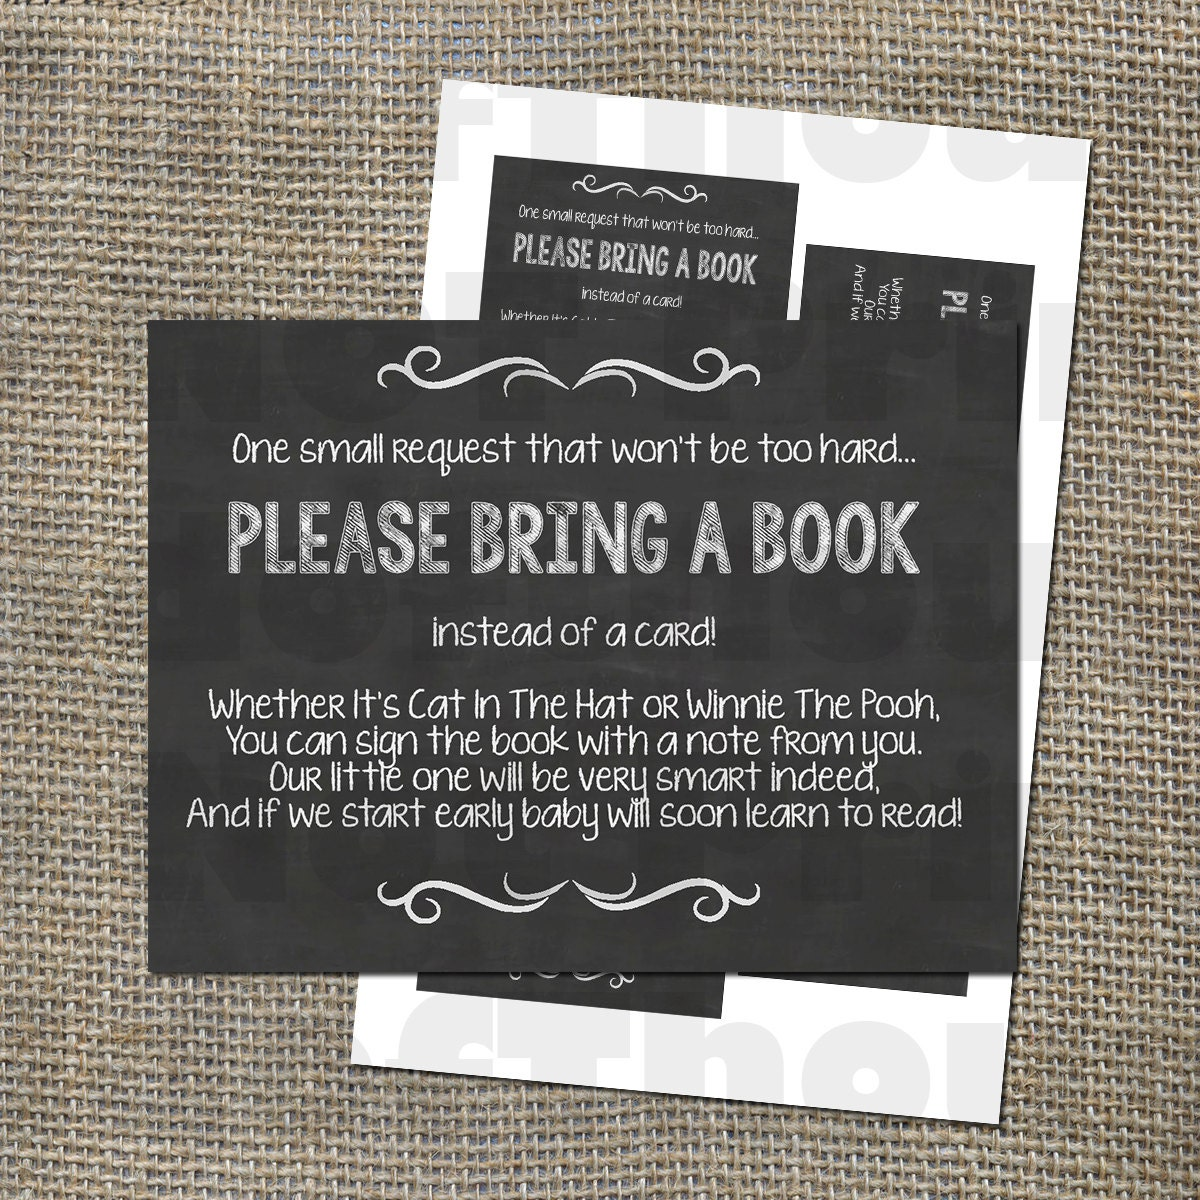 Handy image regarding bring a book instead of a card printable